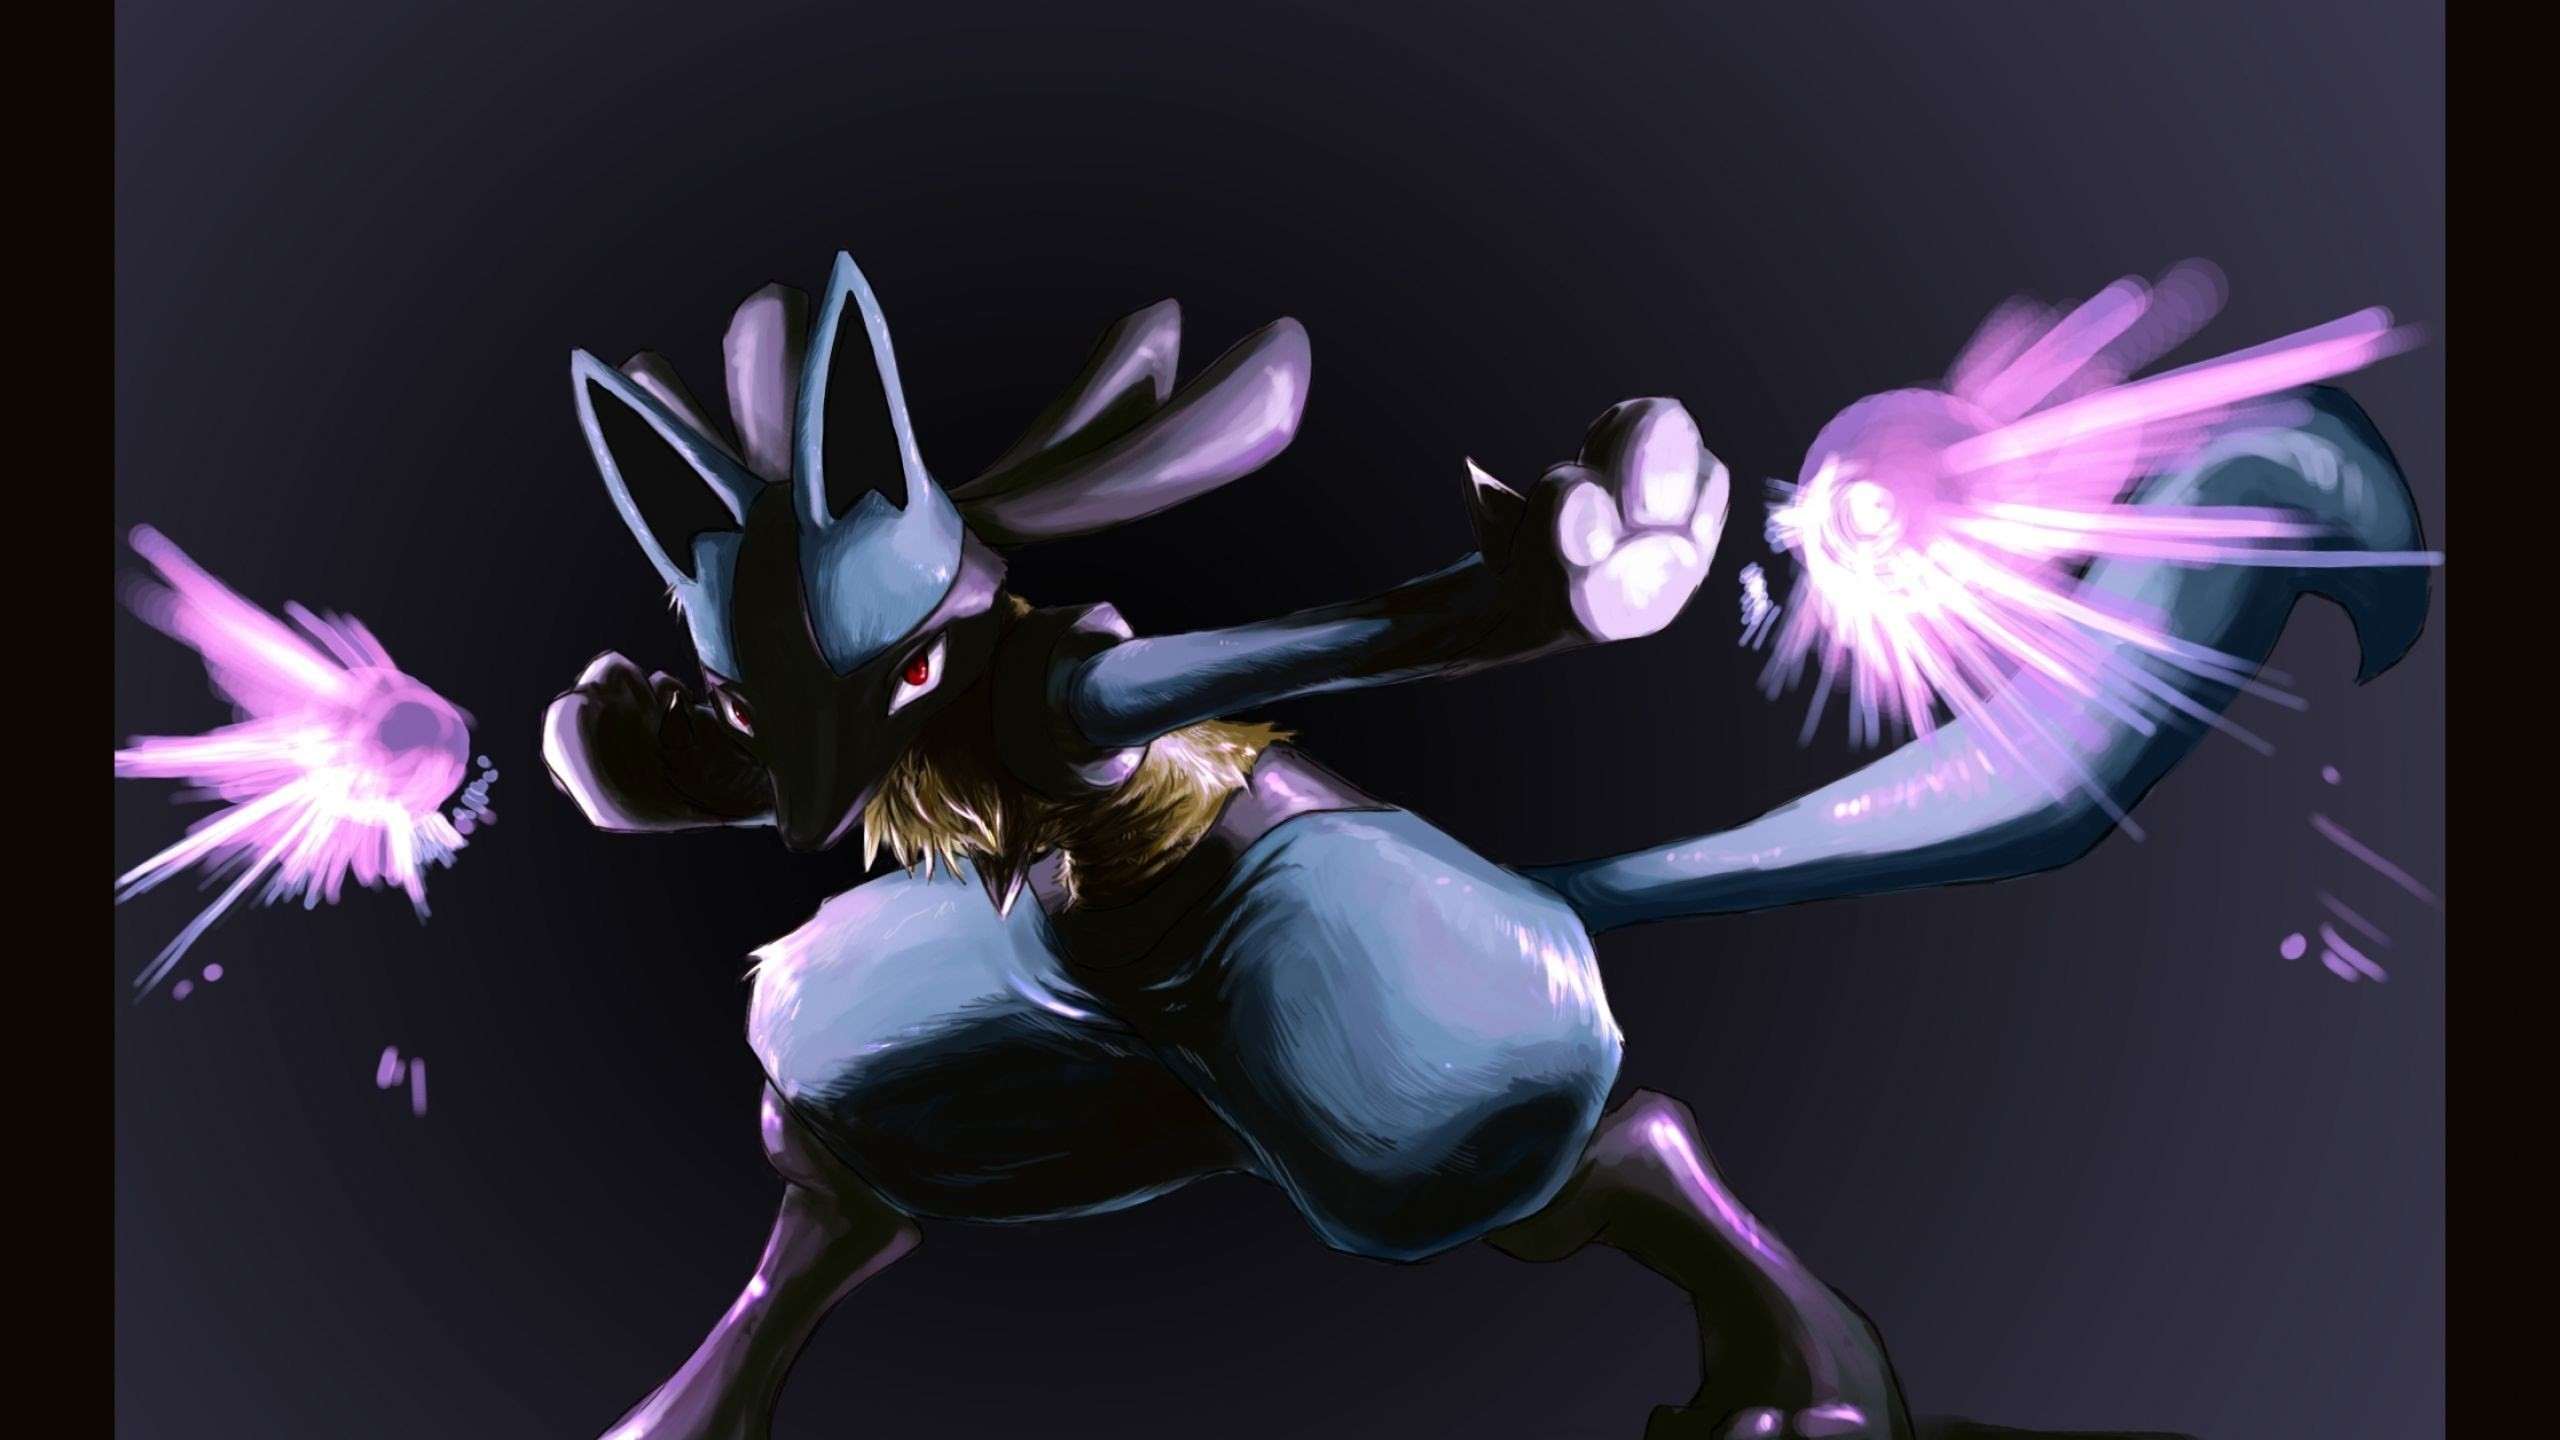 2560x1440 pokemon lucario wallpaper free download